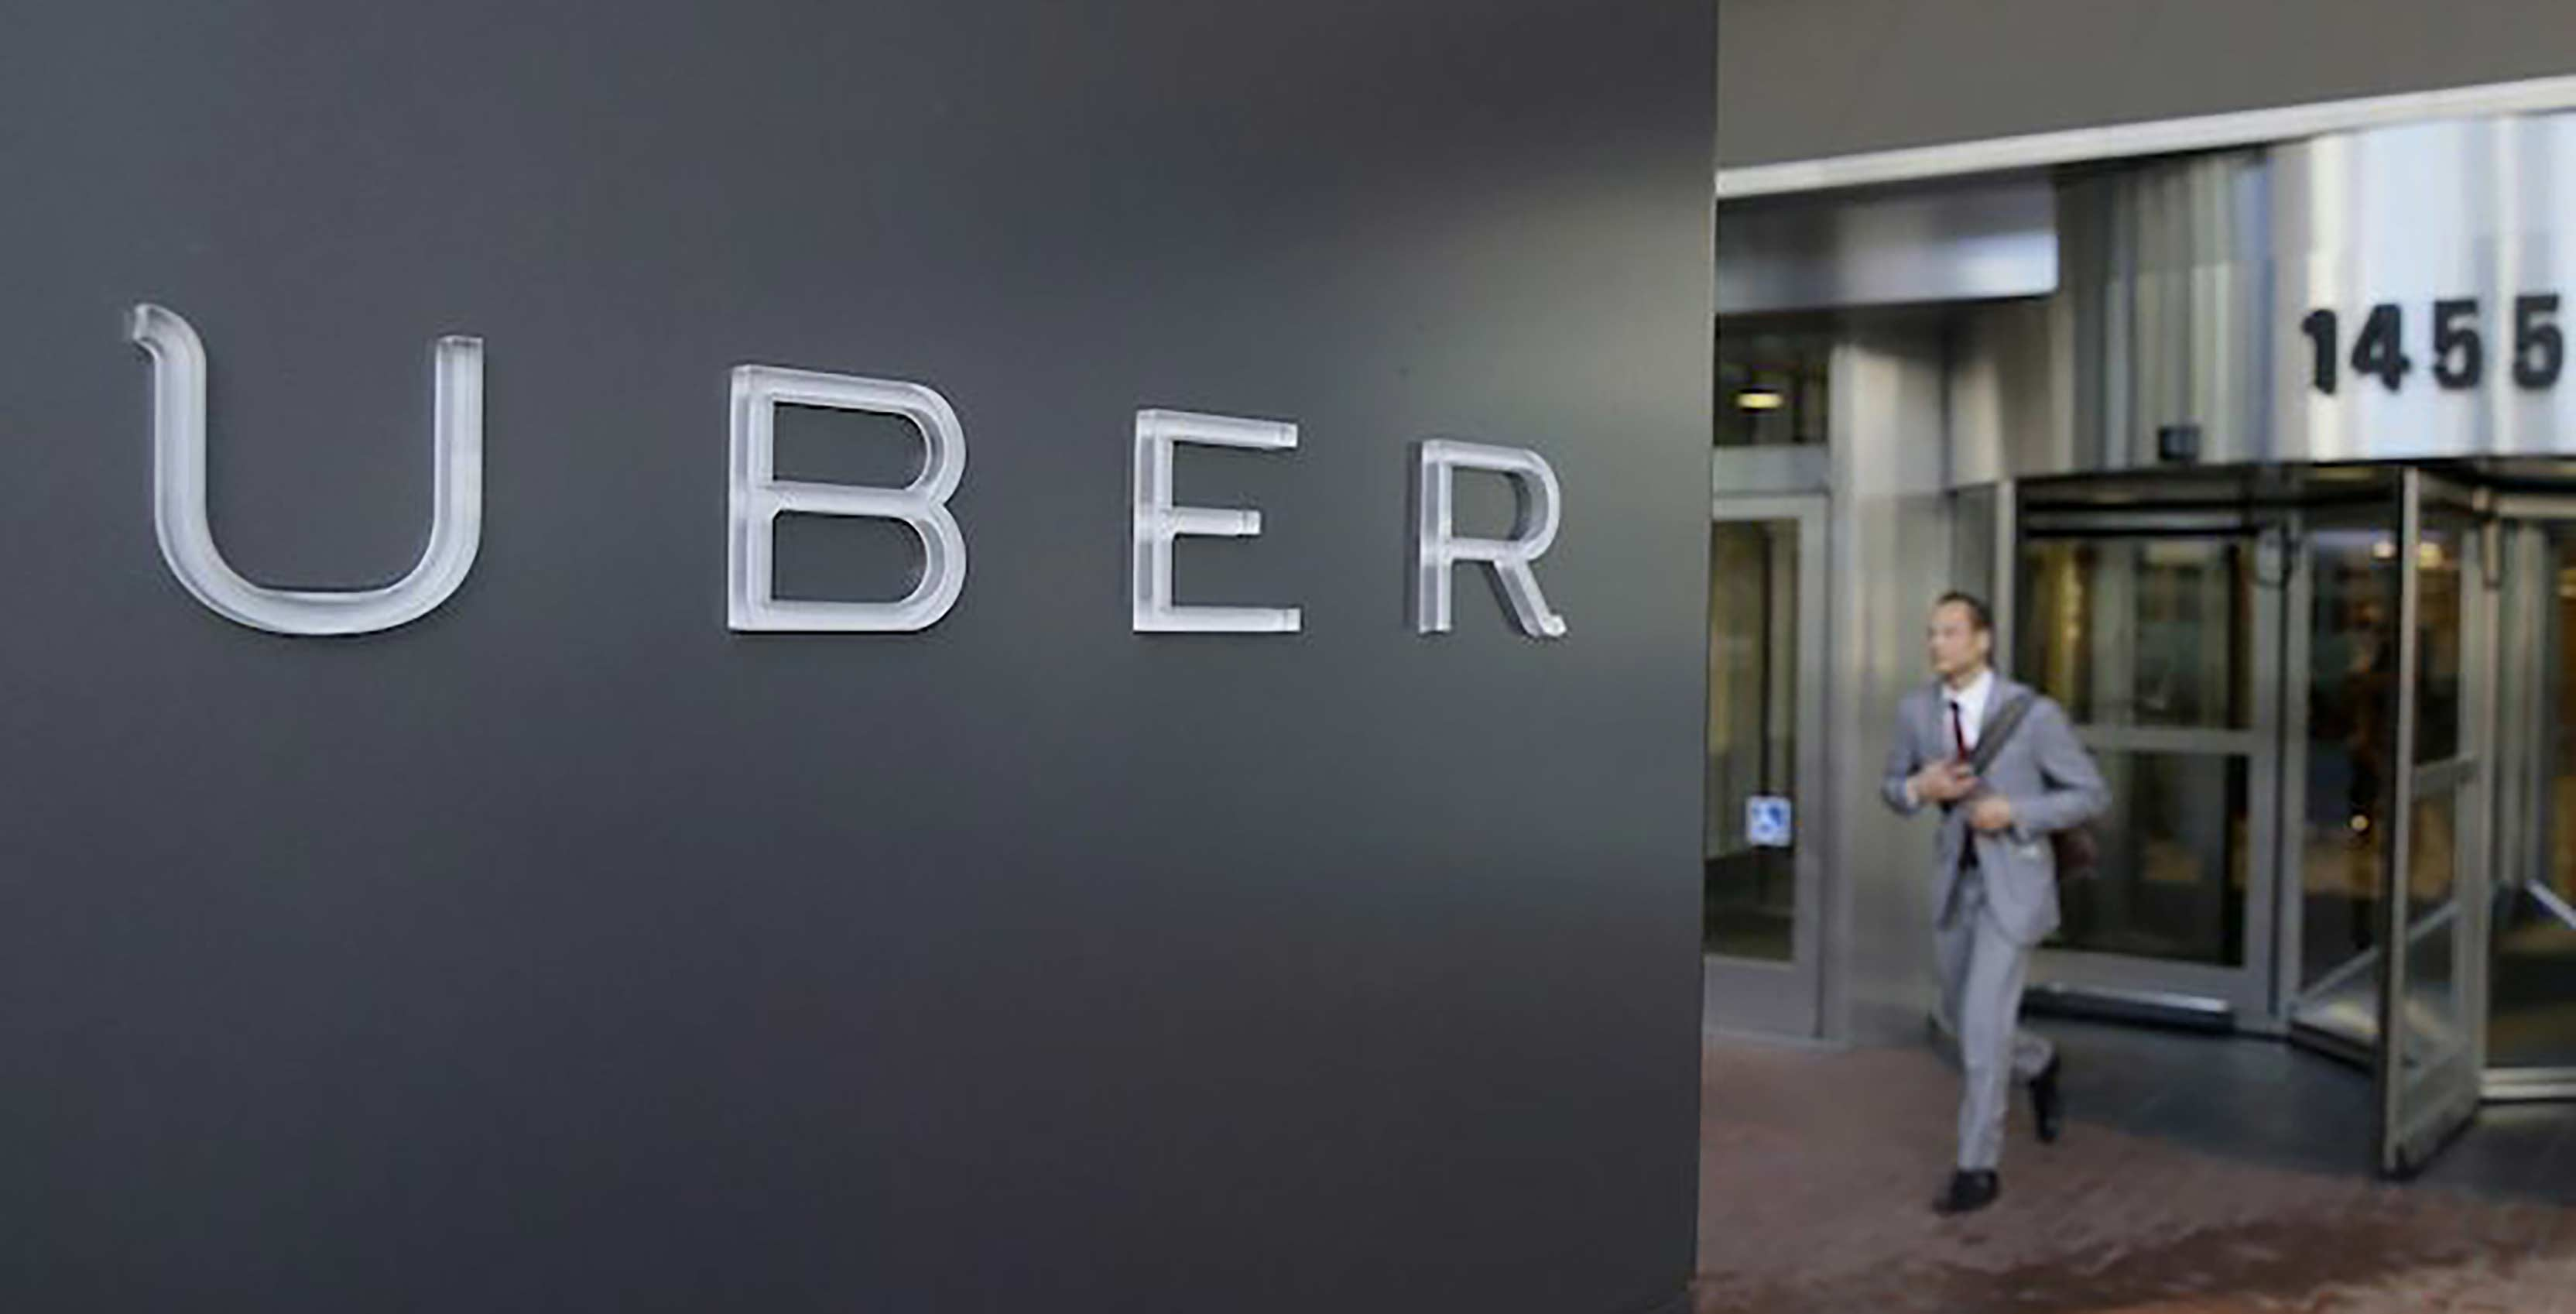 Uber puts driverless auto tests on hold after woman is killed